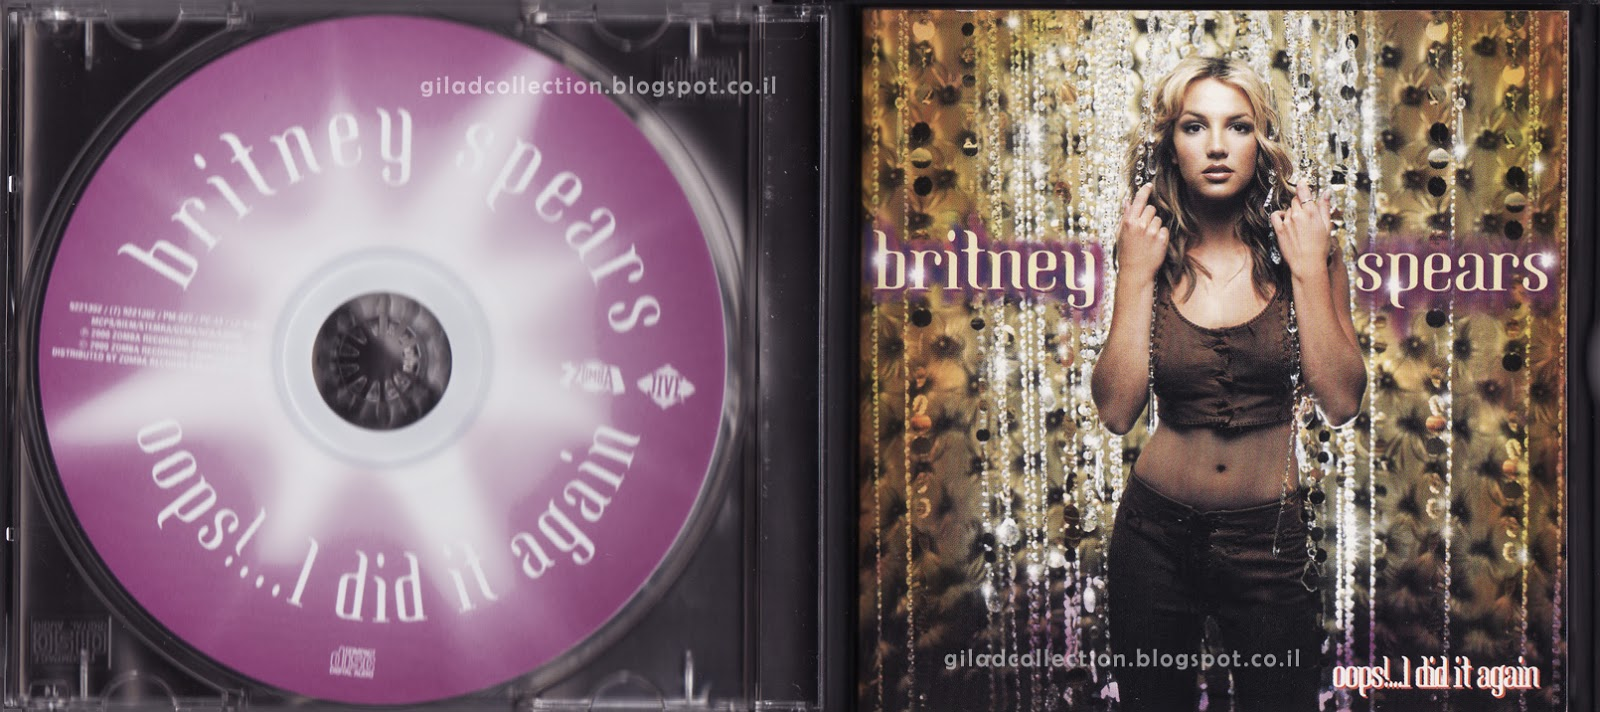 Britney Spears Collection By Gilad Oops I Did It Again Stronger Edition Singapore Cd Vcd Limited Edition